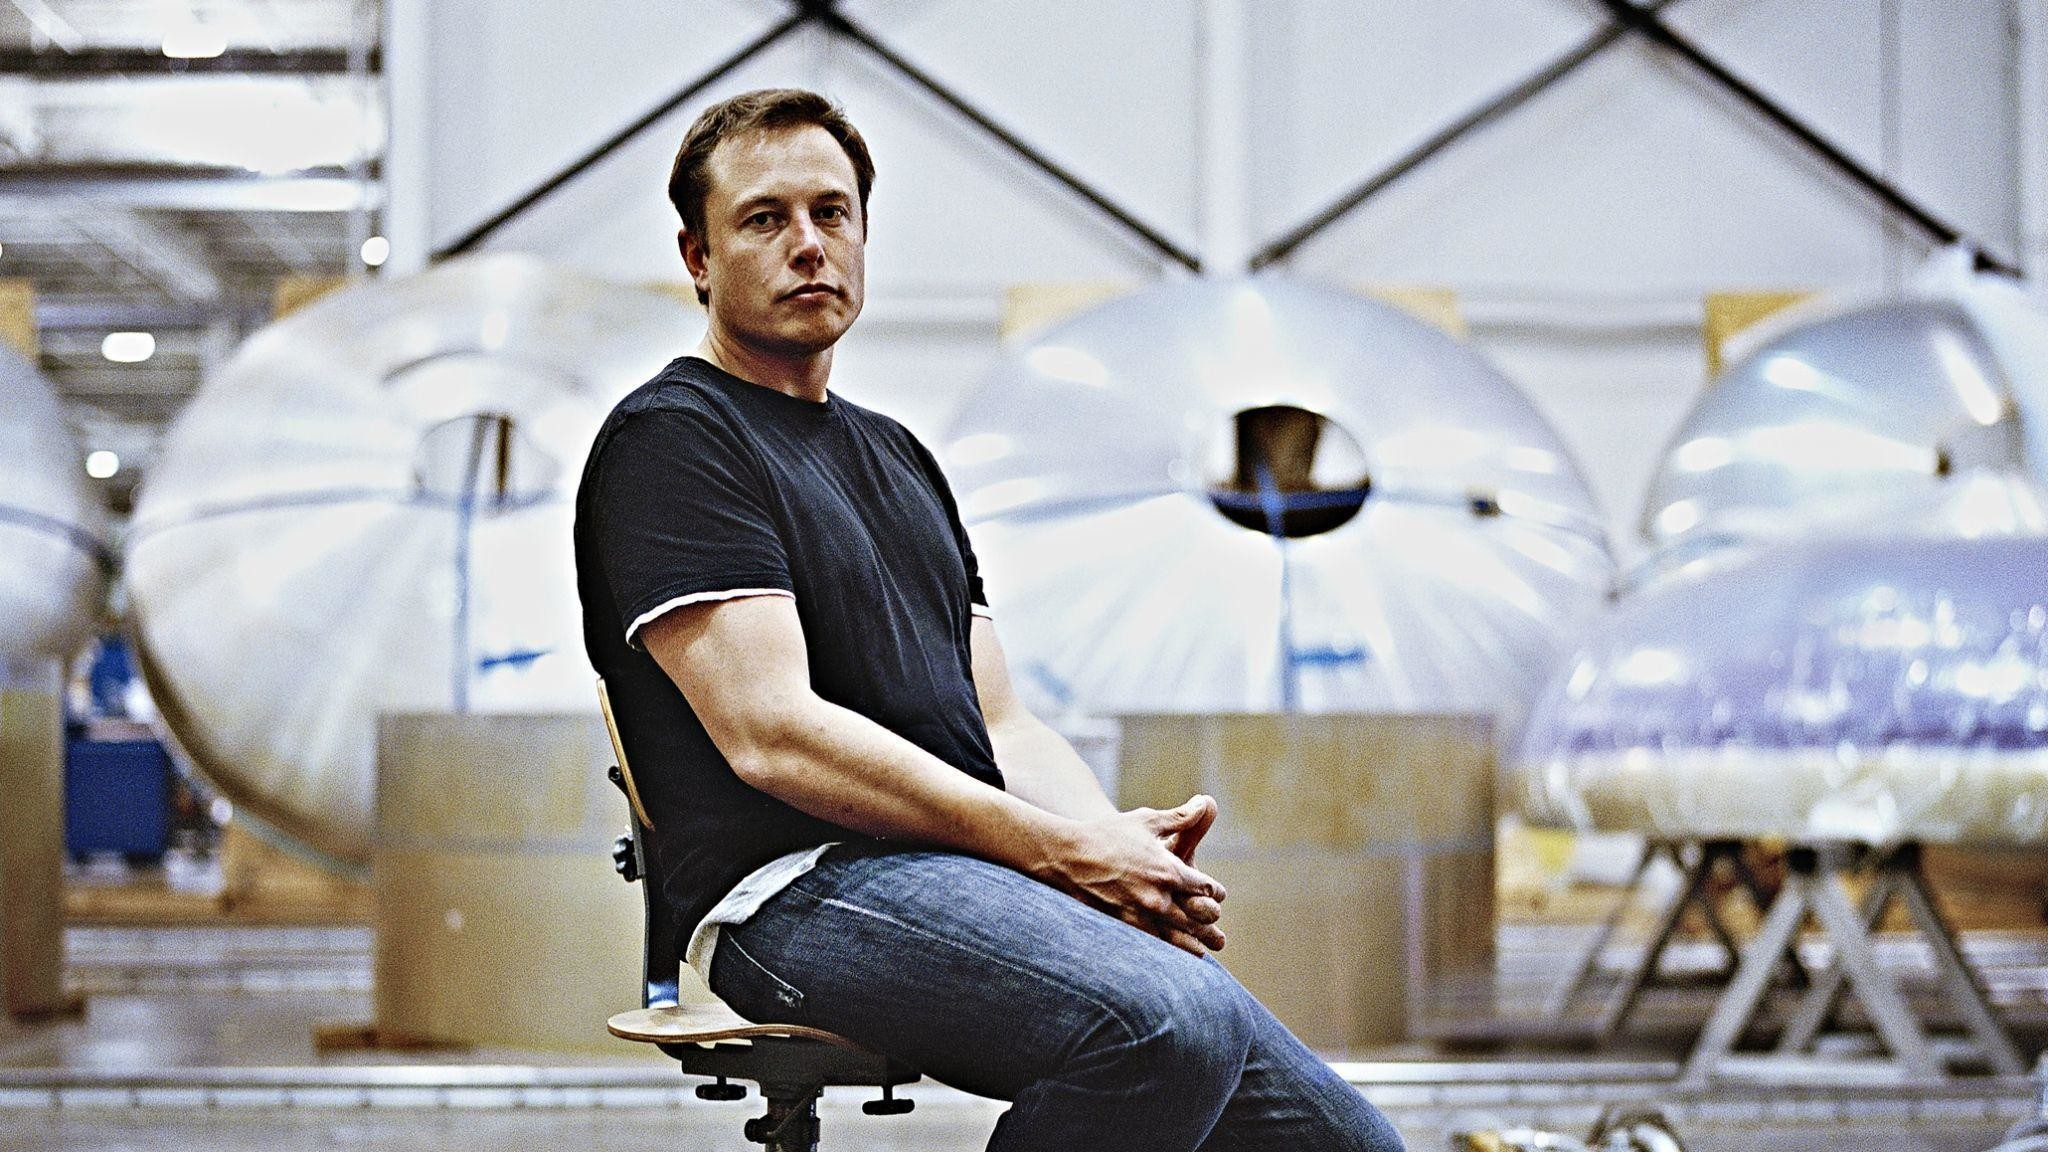 79 Elon Musk Wallpapers on WallpaperPlay 2048x1152